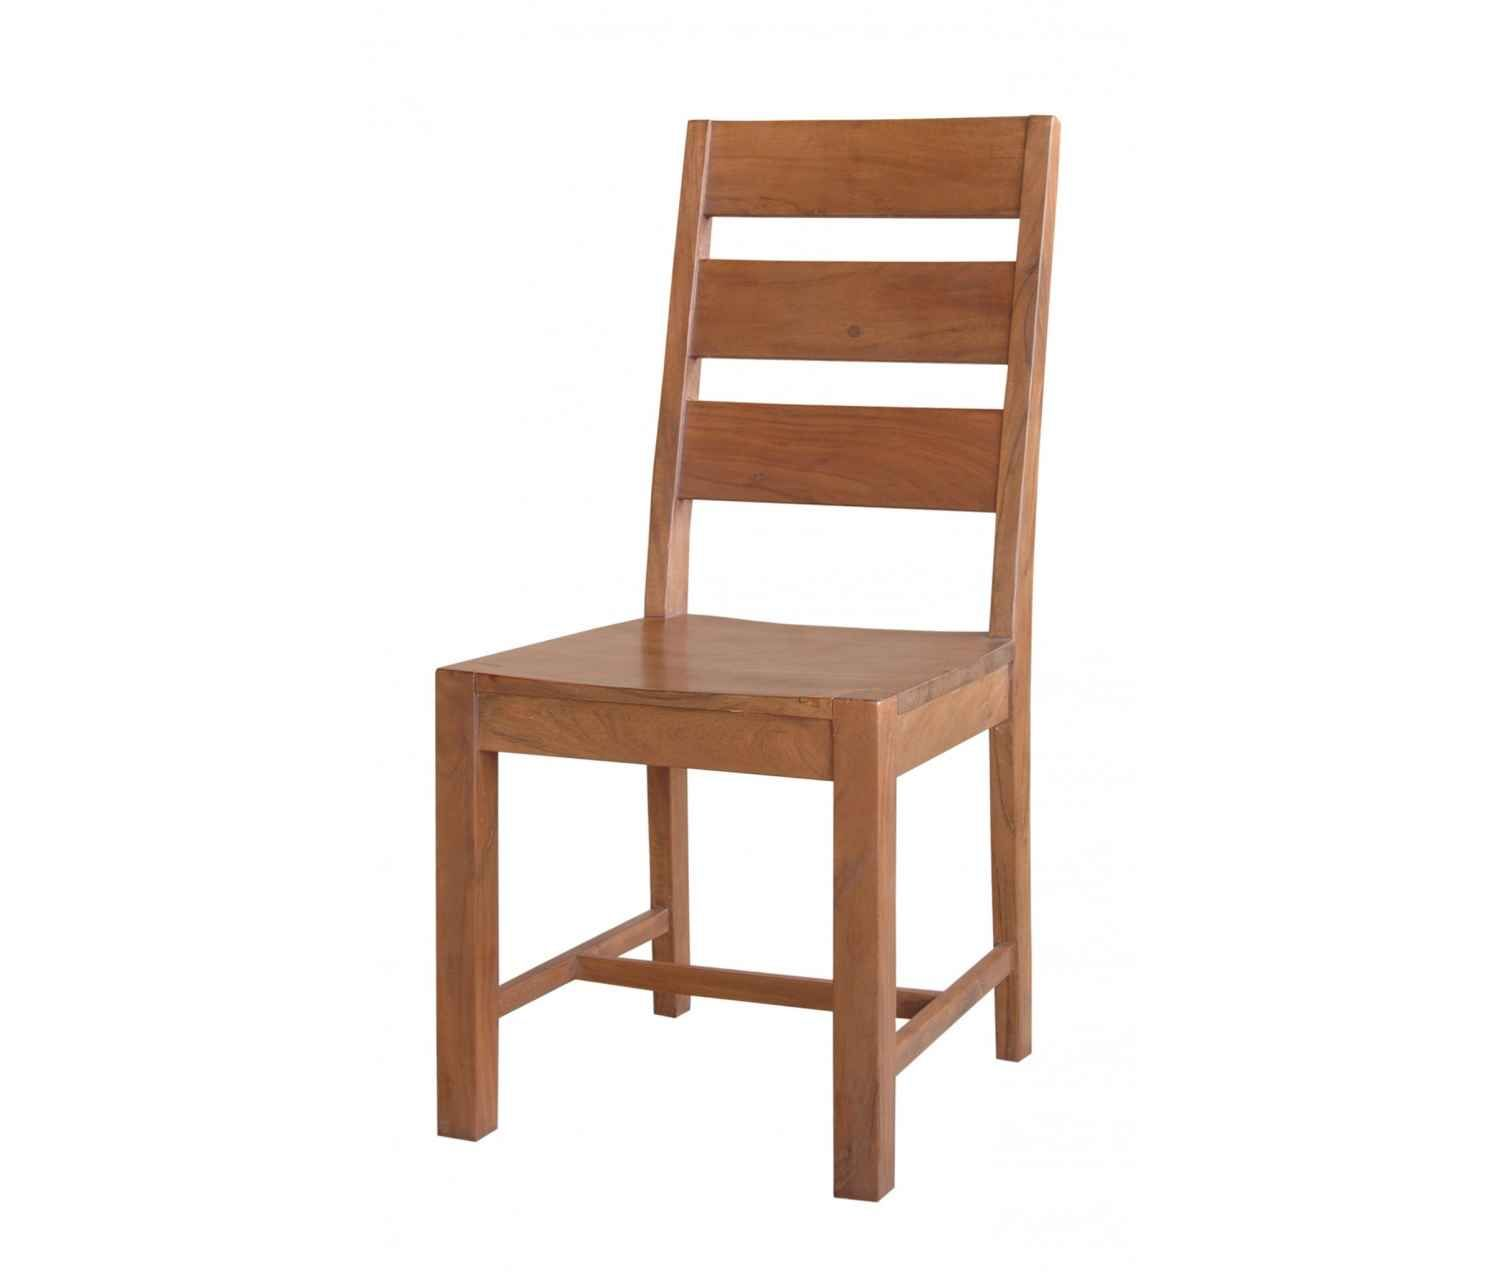 Wood Chairs Diy | Wooden Dining Room Chair Furniture